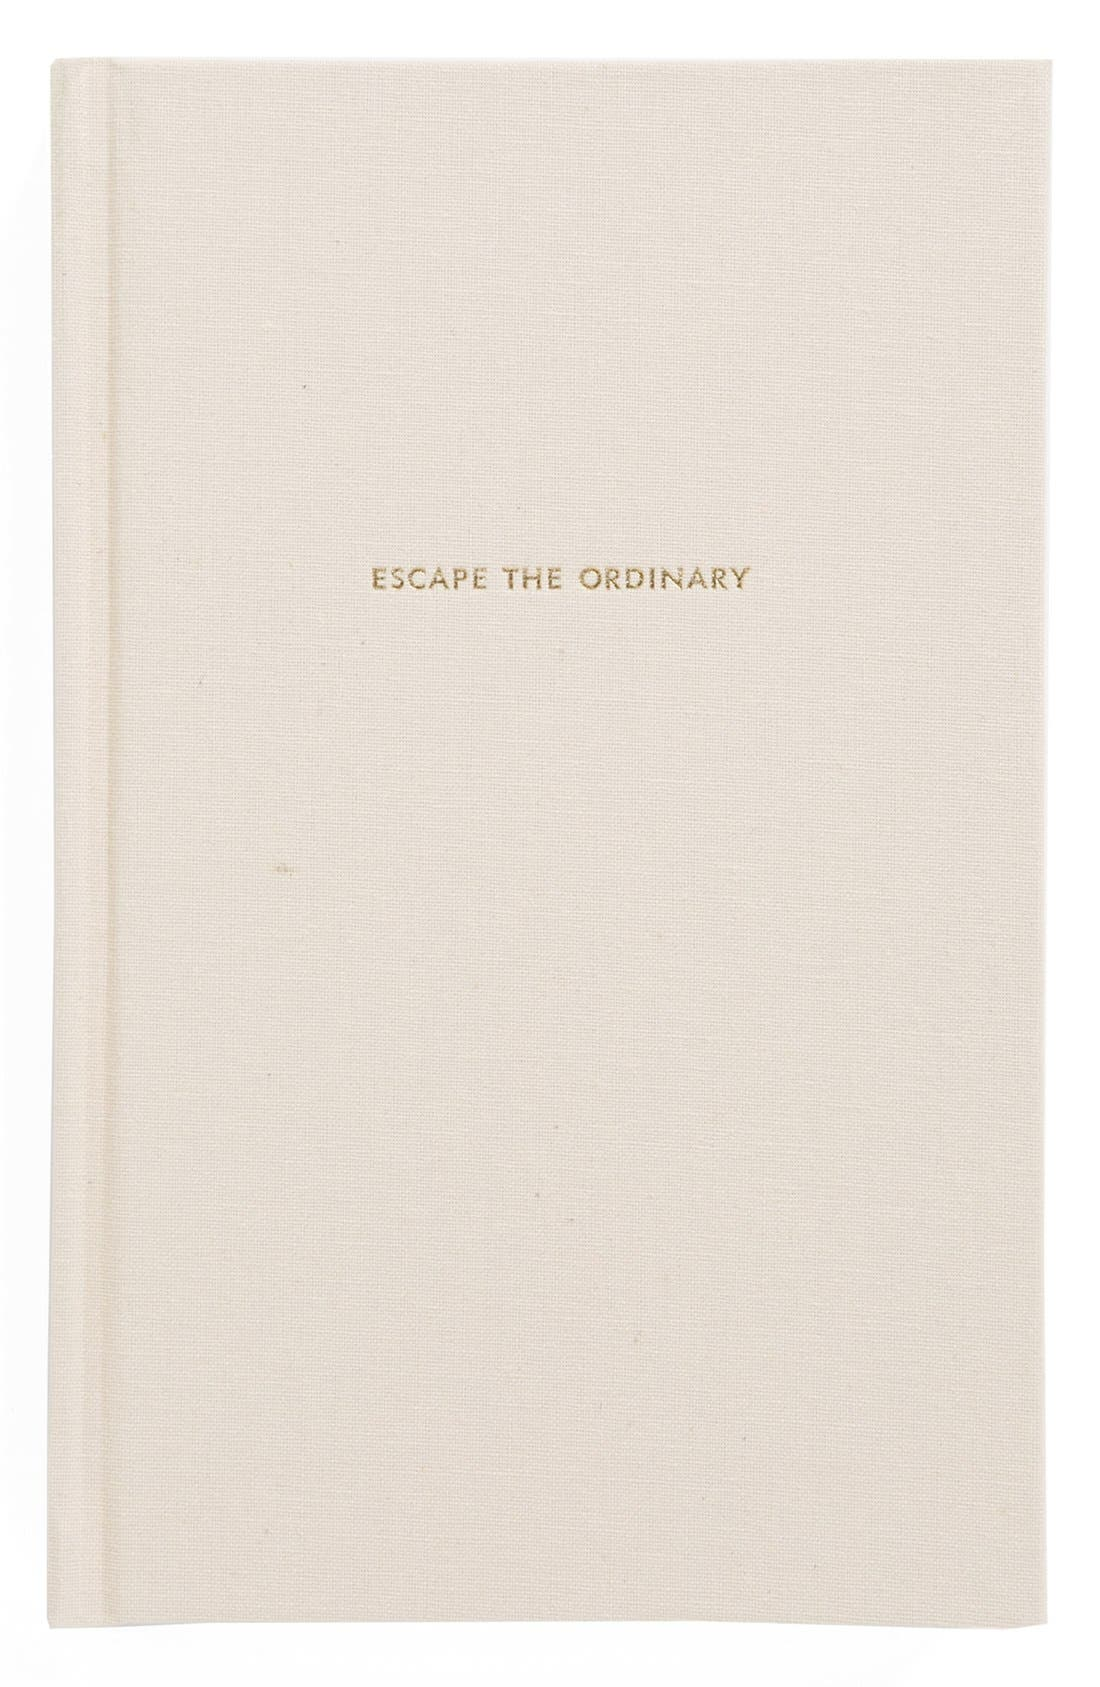 Main Image - kate spade new york 'escape the ordinary' journal